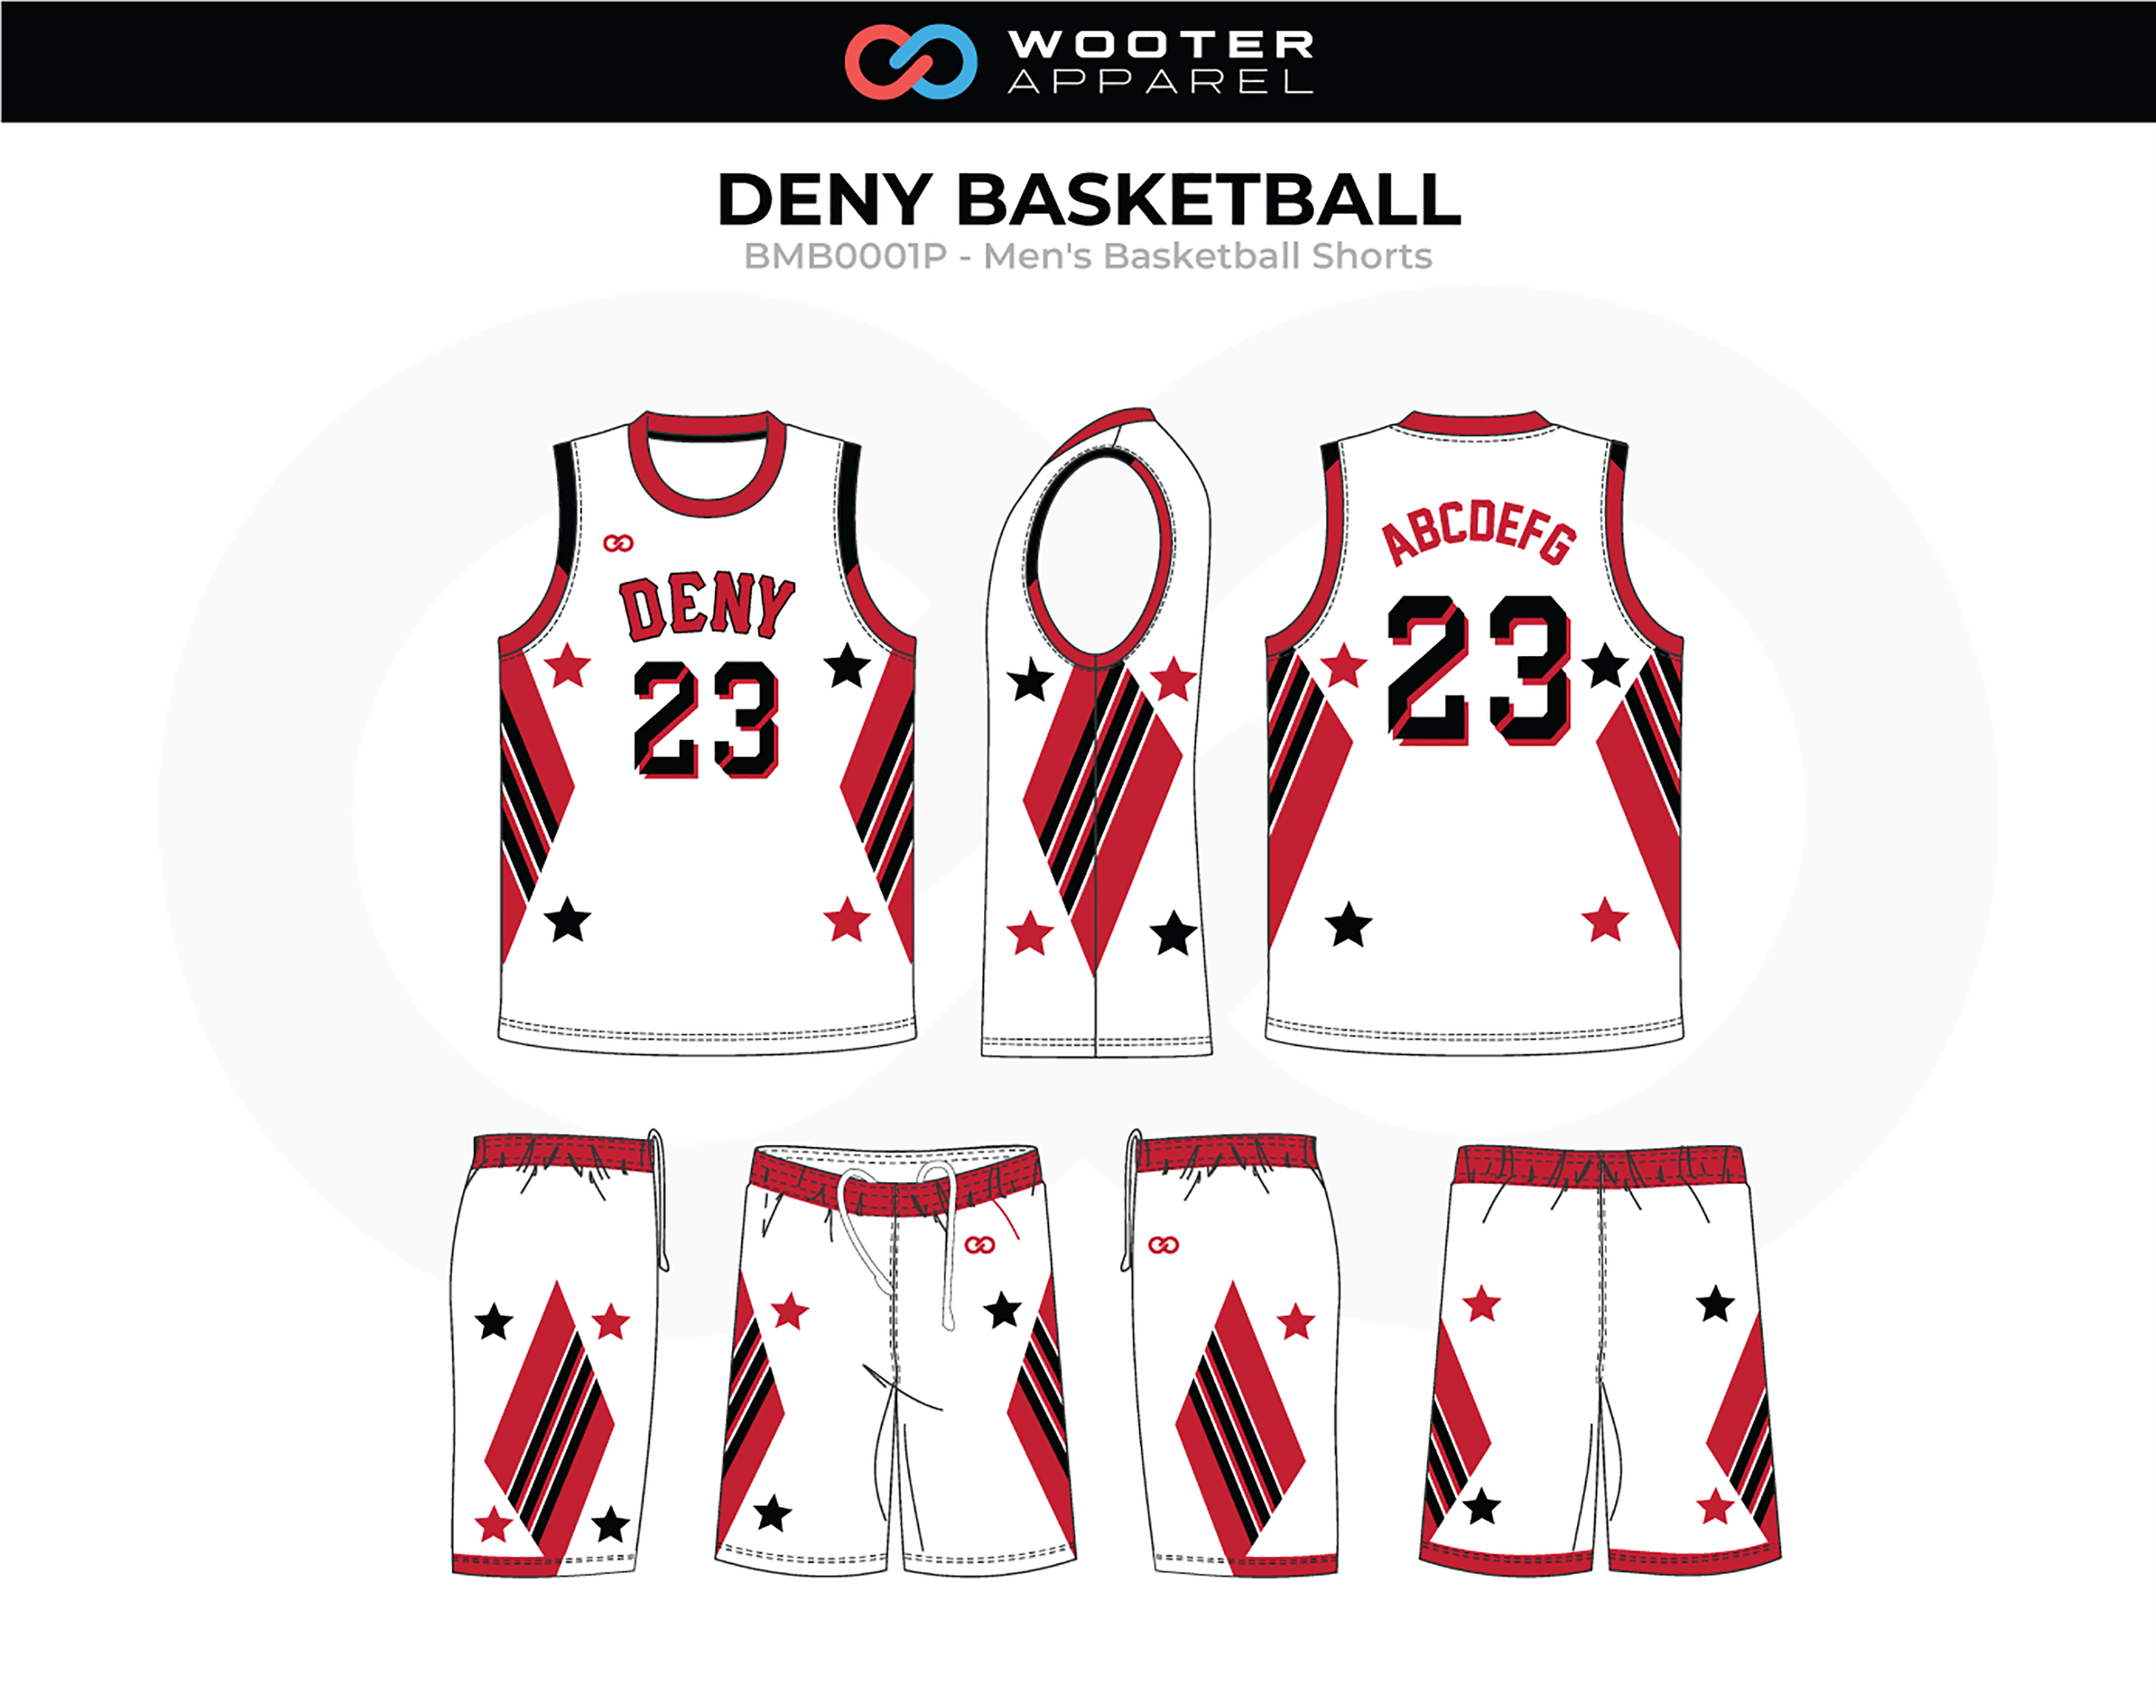 DENY White Red Black Basketball Uniform, Jersey and Shorts